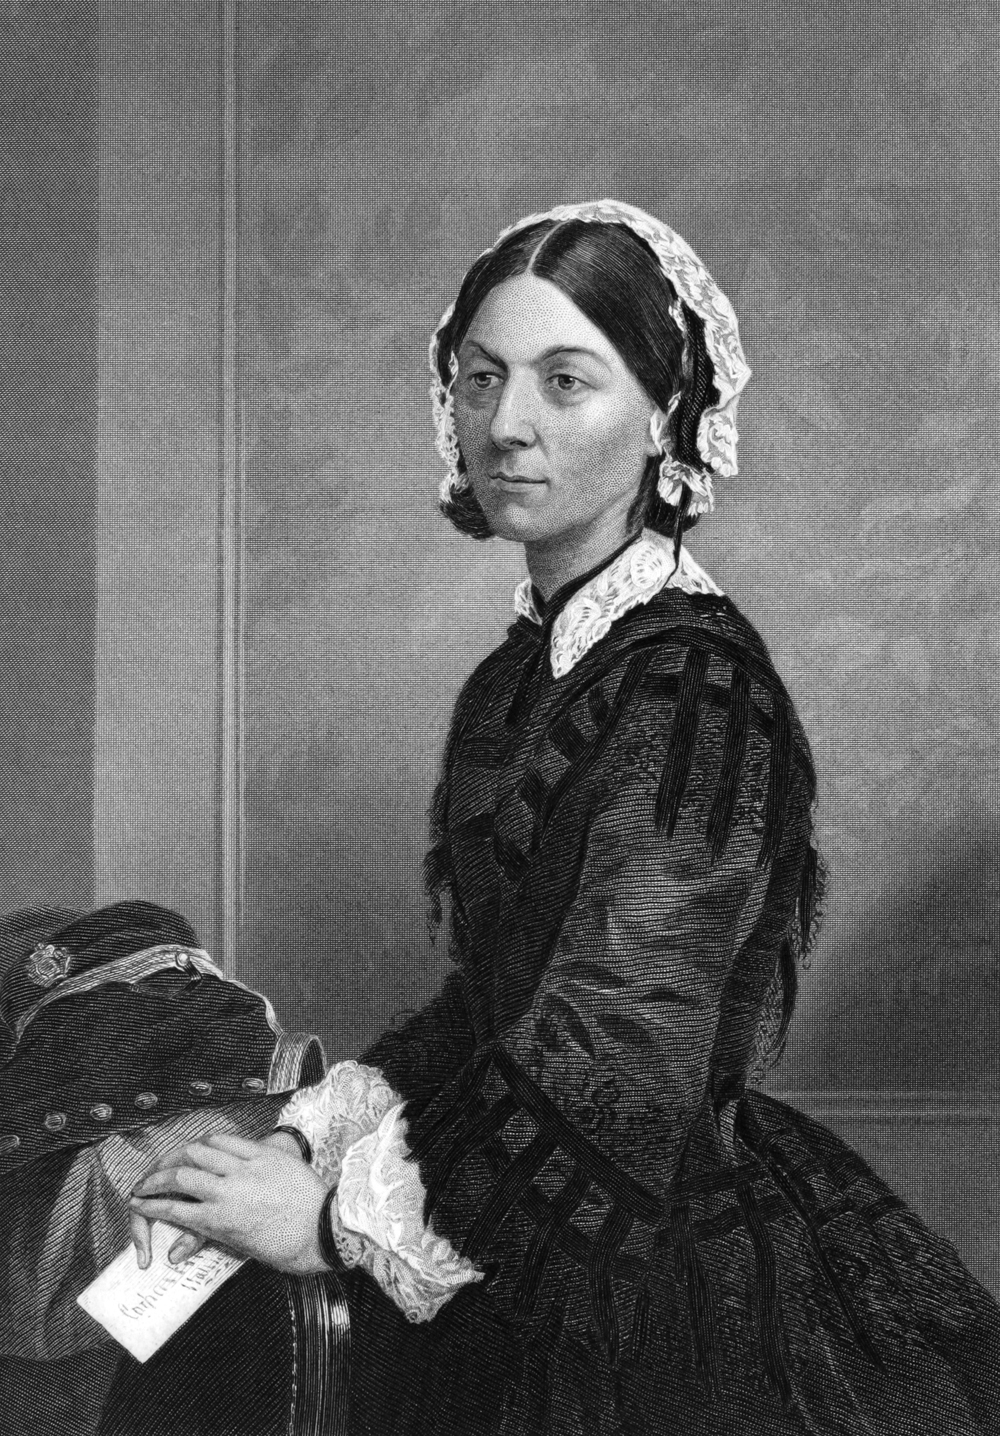 Florence Nightingale (1820-1910) on engraving from 1873. Celebrated English social reformer, statistician and  founder of modern nursing. Engraved by unknown artist and published in ''Portrait Gallery of Eminent Men and Women with Biographies'', USA, 1873.